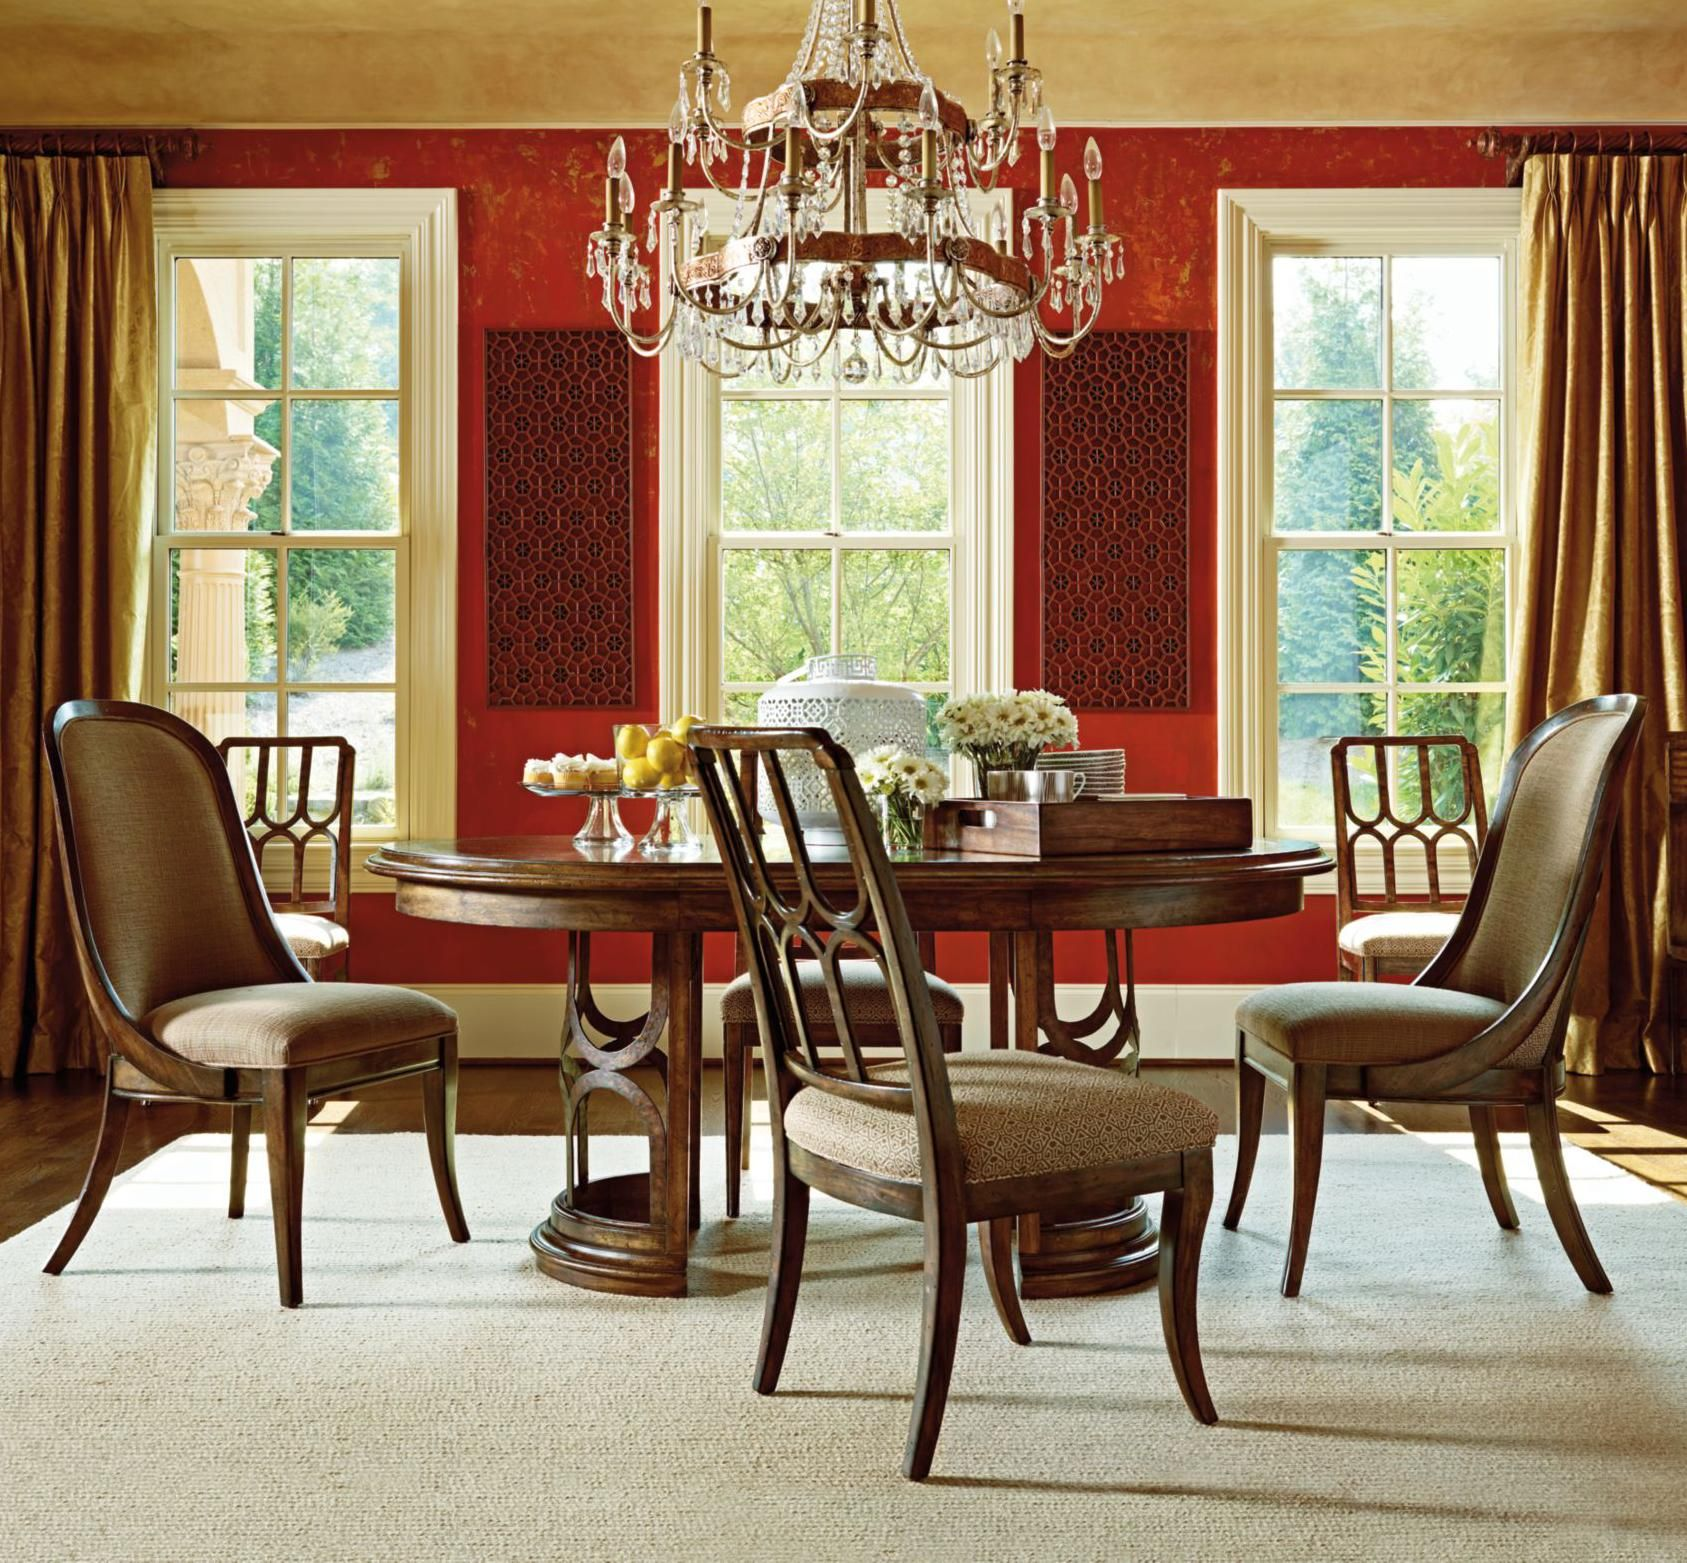 Archipelago 5Piece Monserrat Pedestal Table Setstanley Best Stanley Dining Room Set Design Inspiration